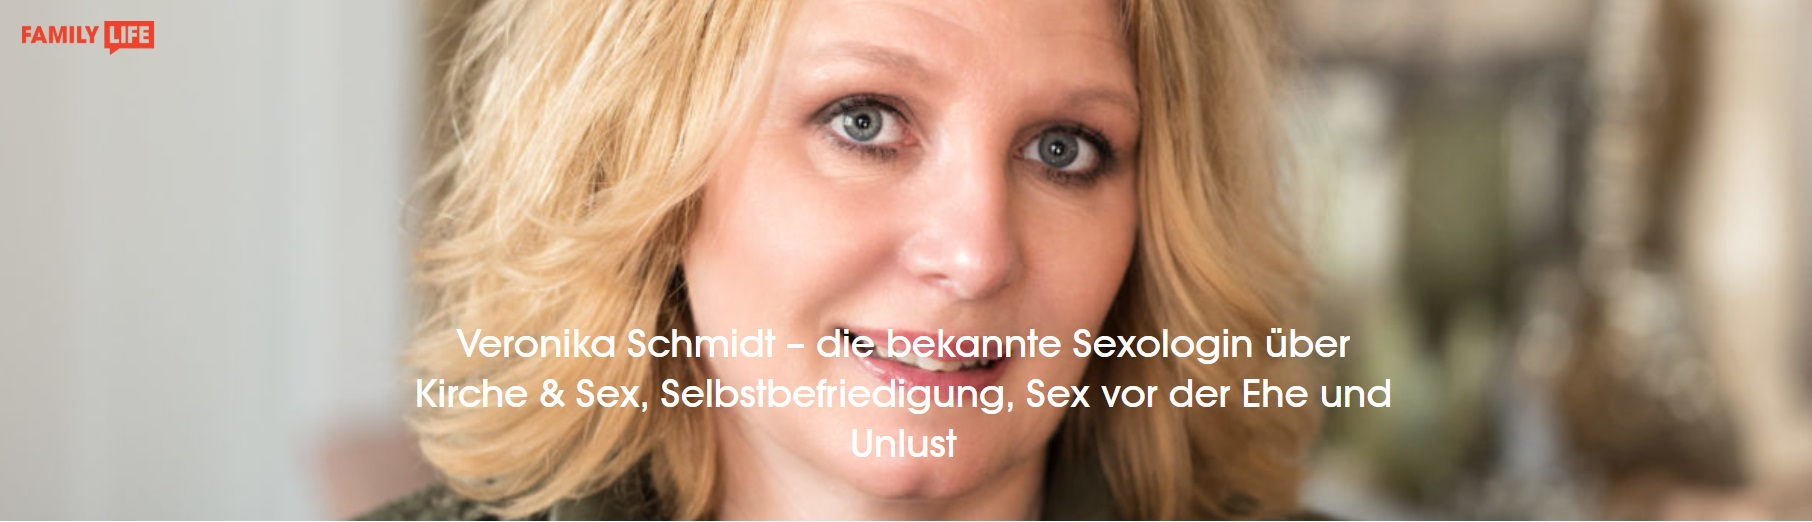 Tödlicher Sex-Positionen